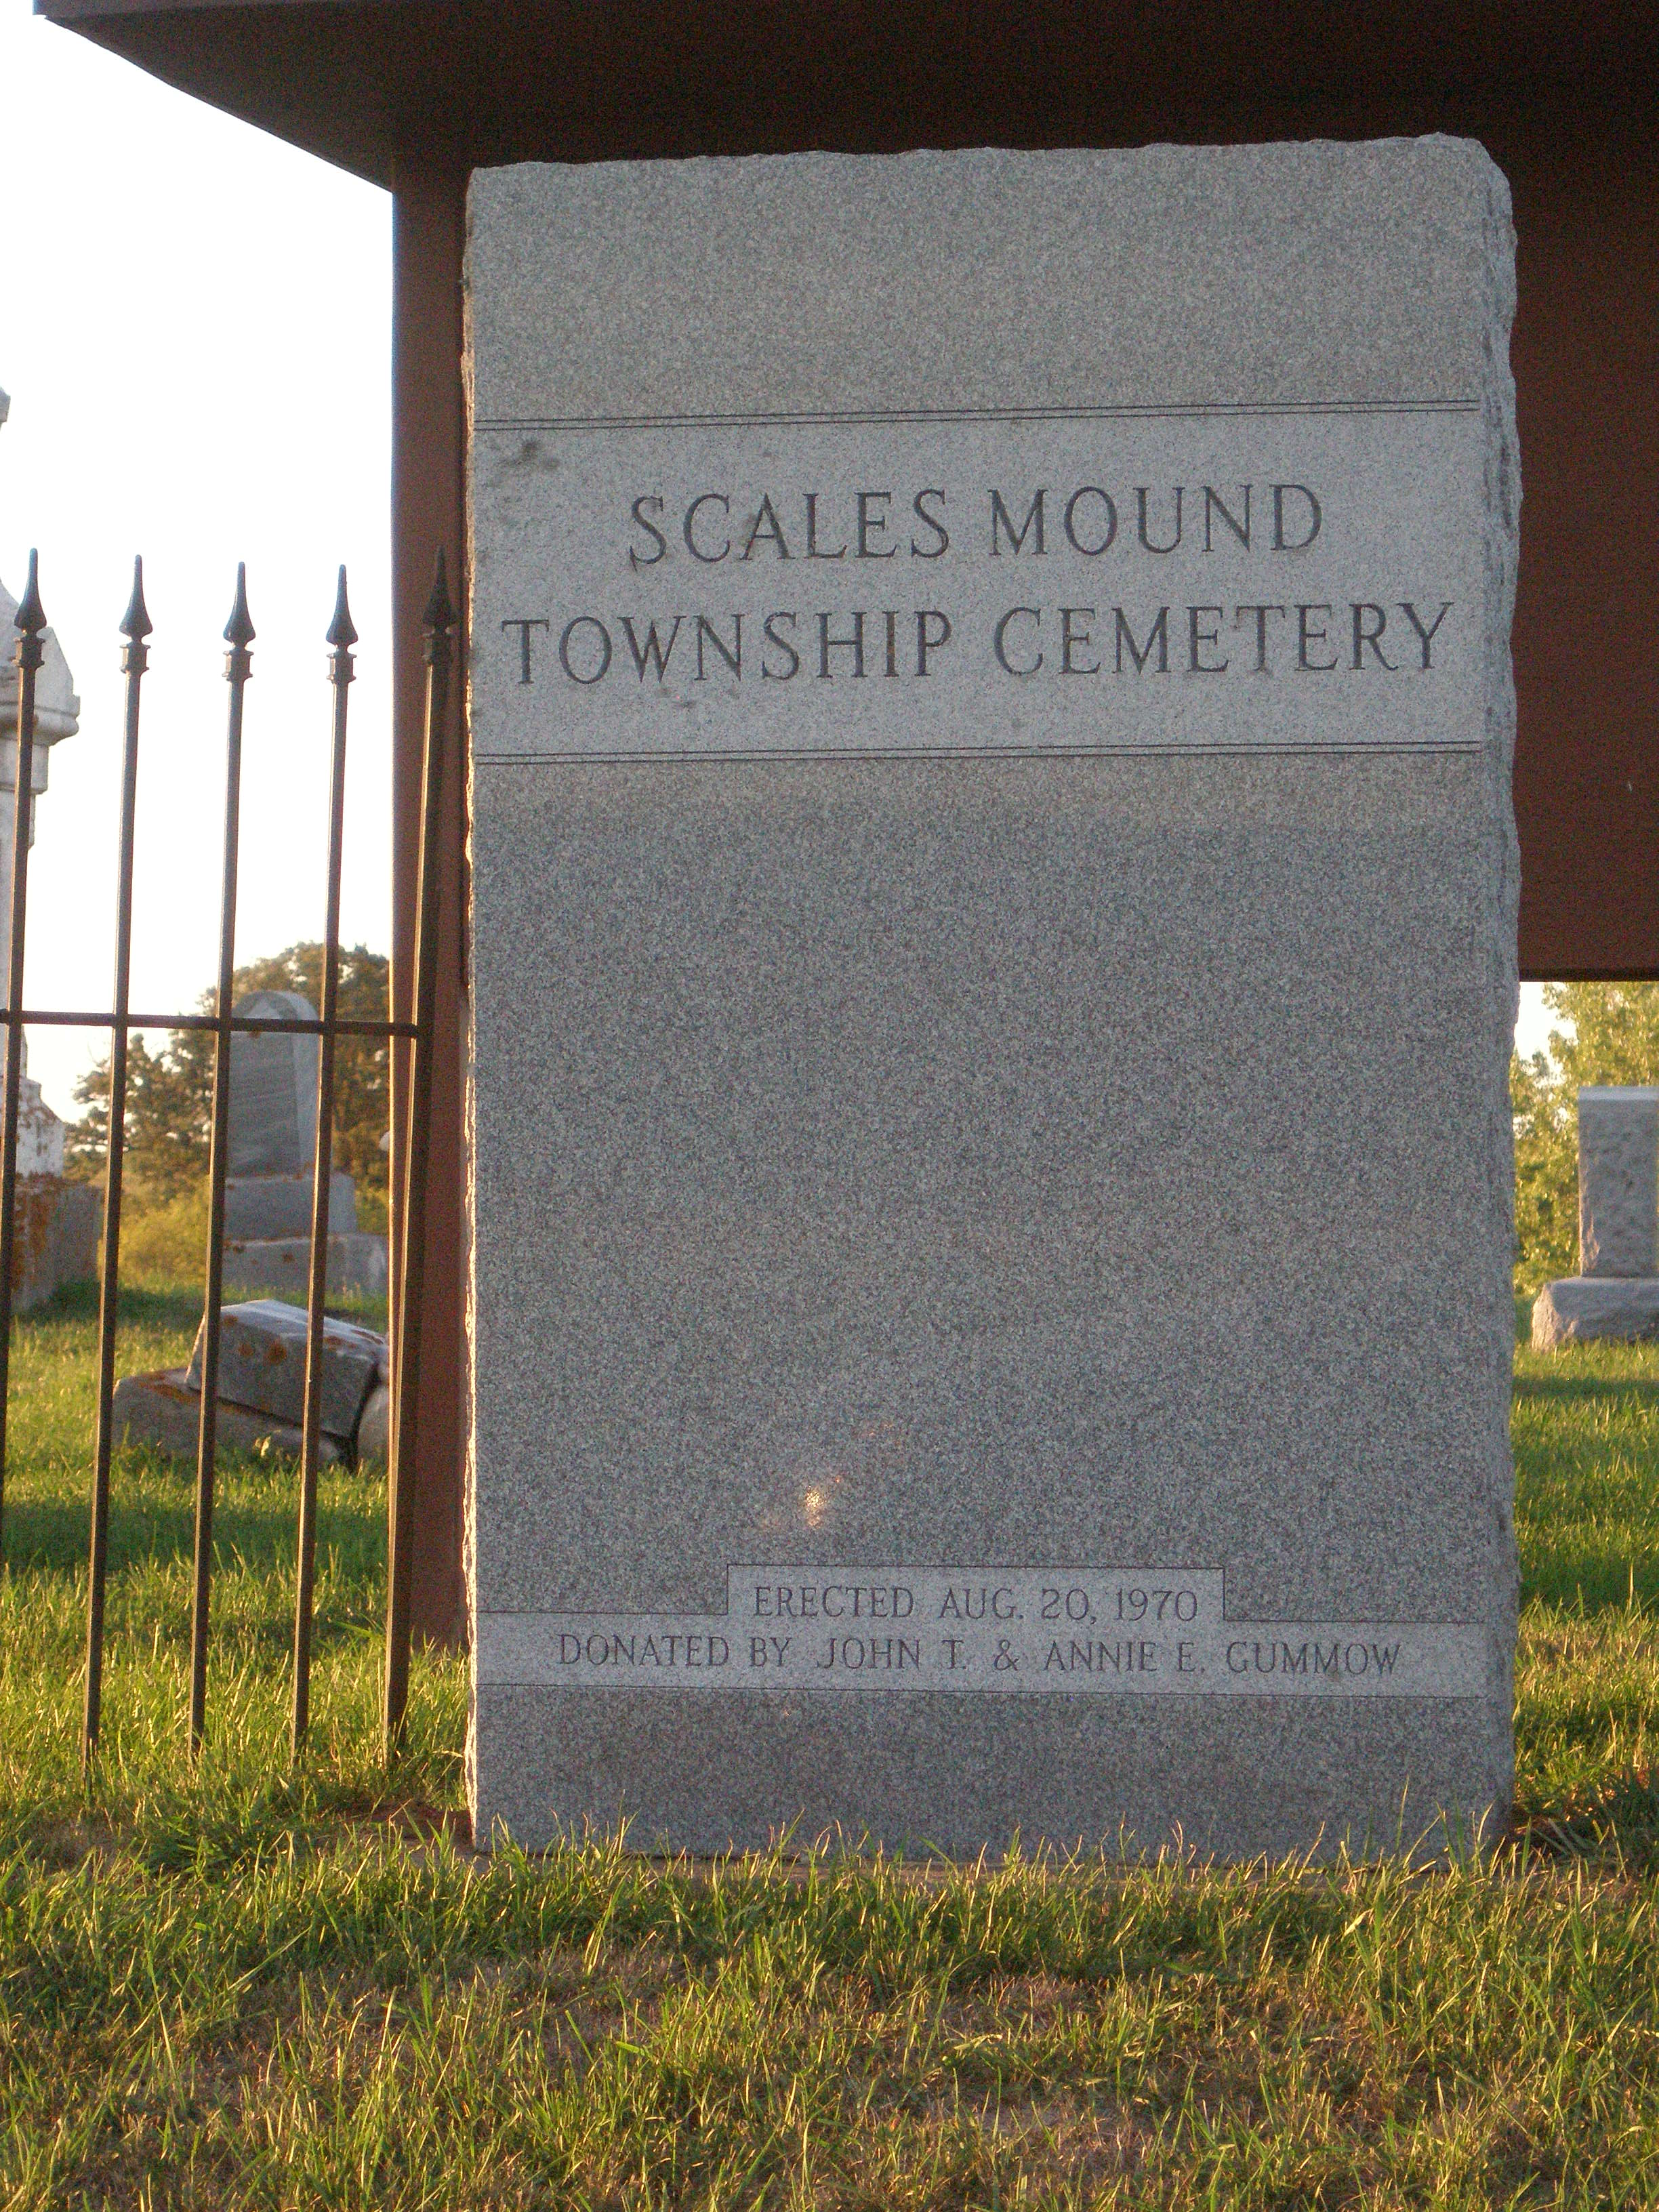 Scales Mound Township Cemetery